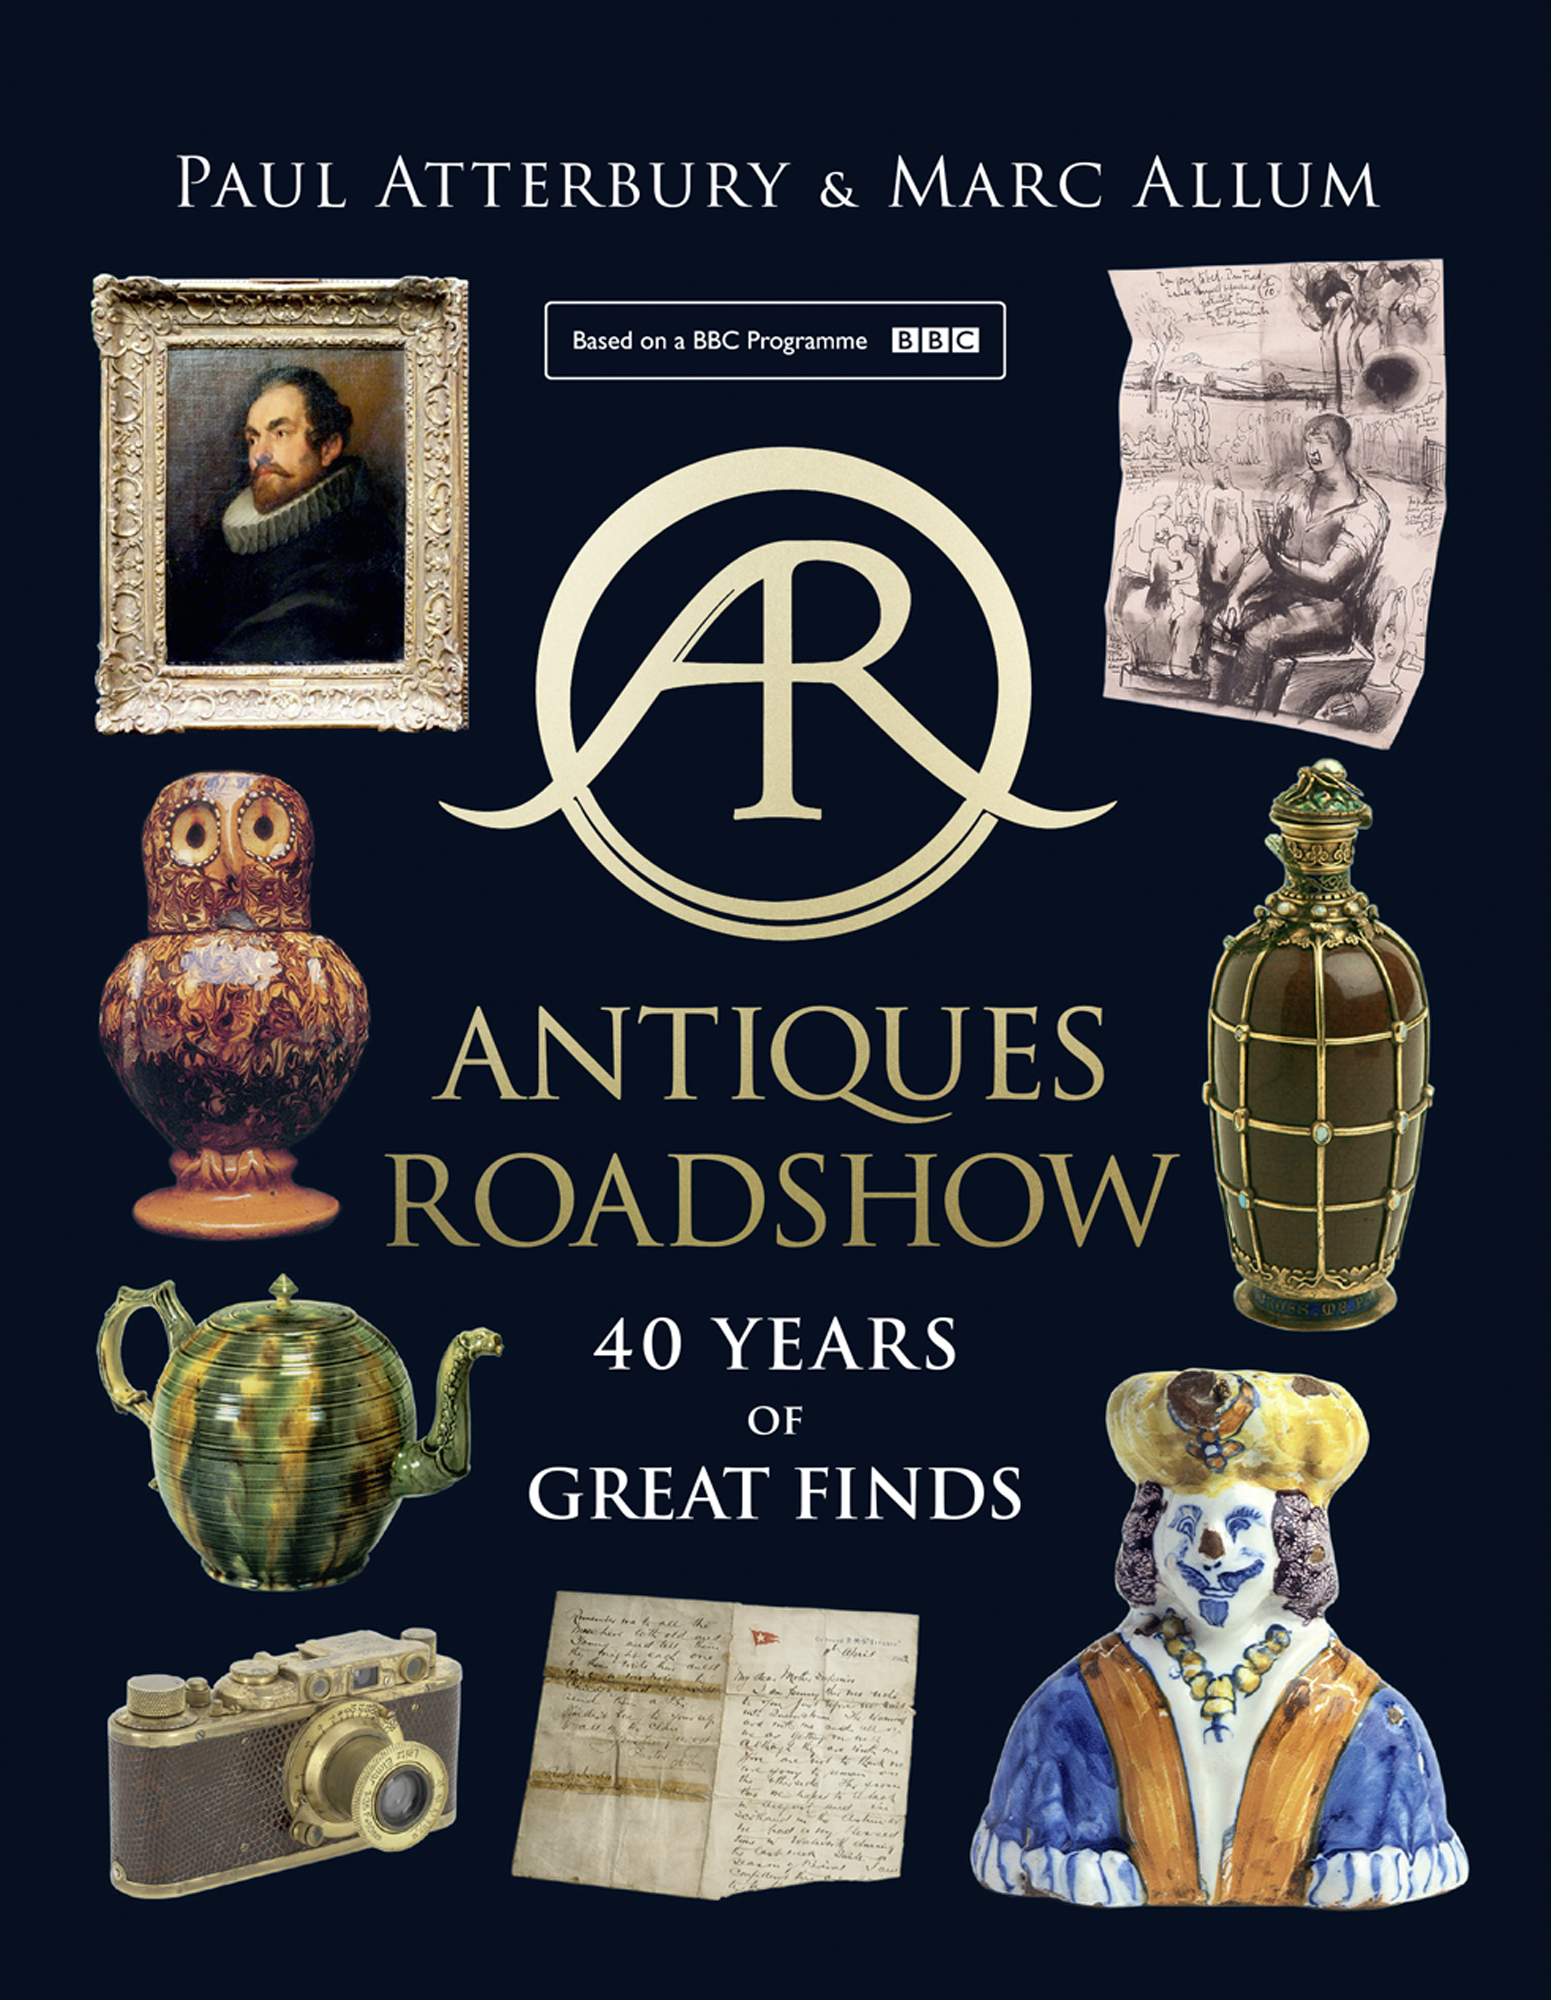 Paul Atterbury Antiques Roadshow: 40 Years of Great Finds axxis axxis 20 years of axxis the legendary anniversary live show 2 cd